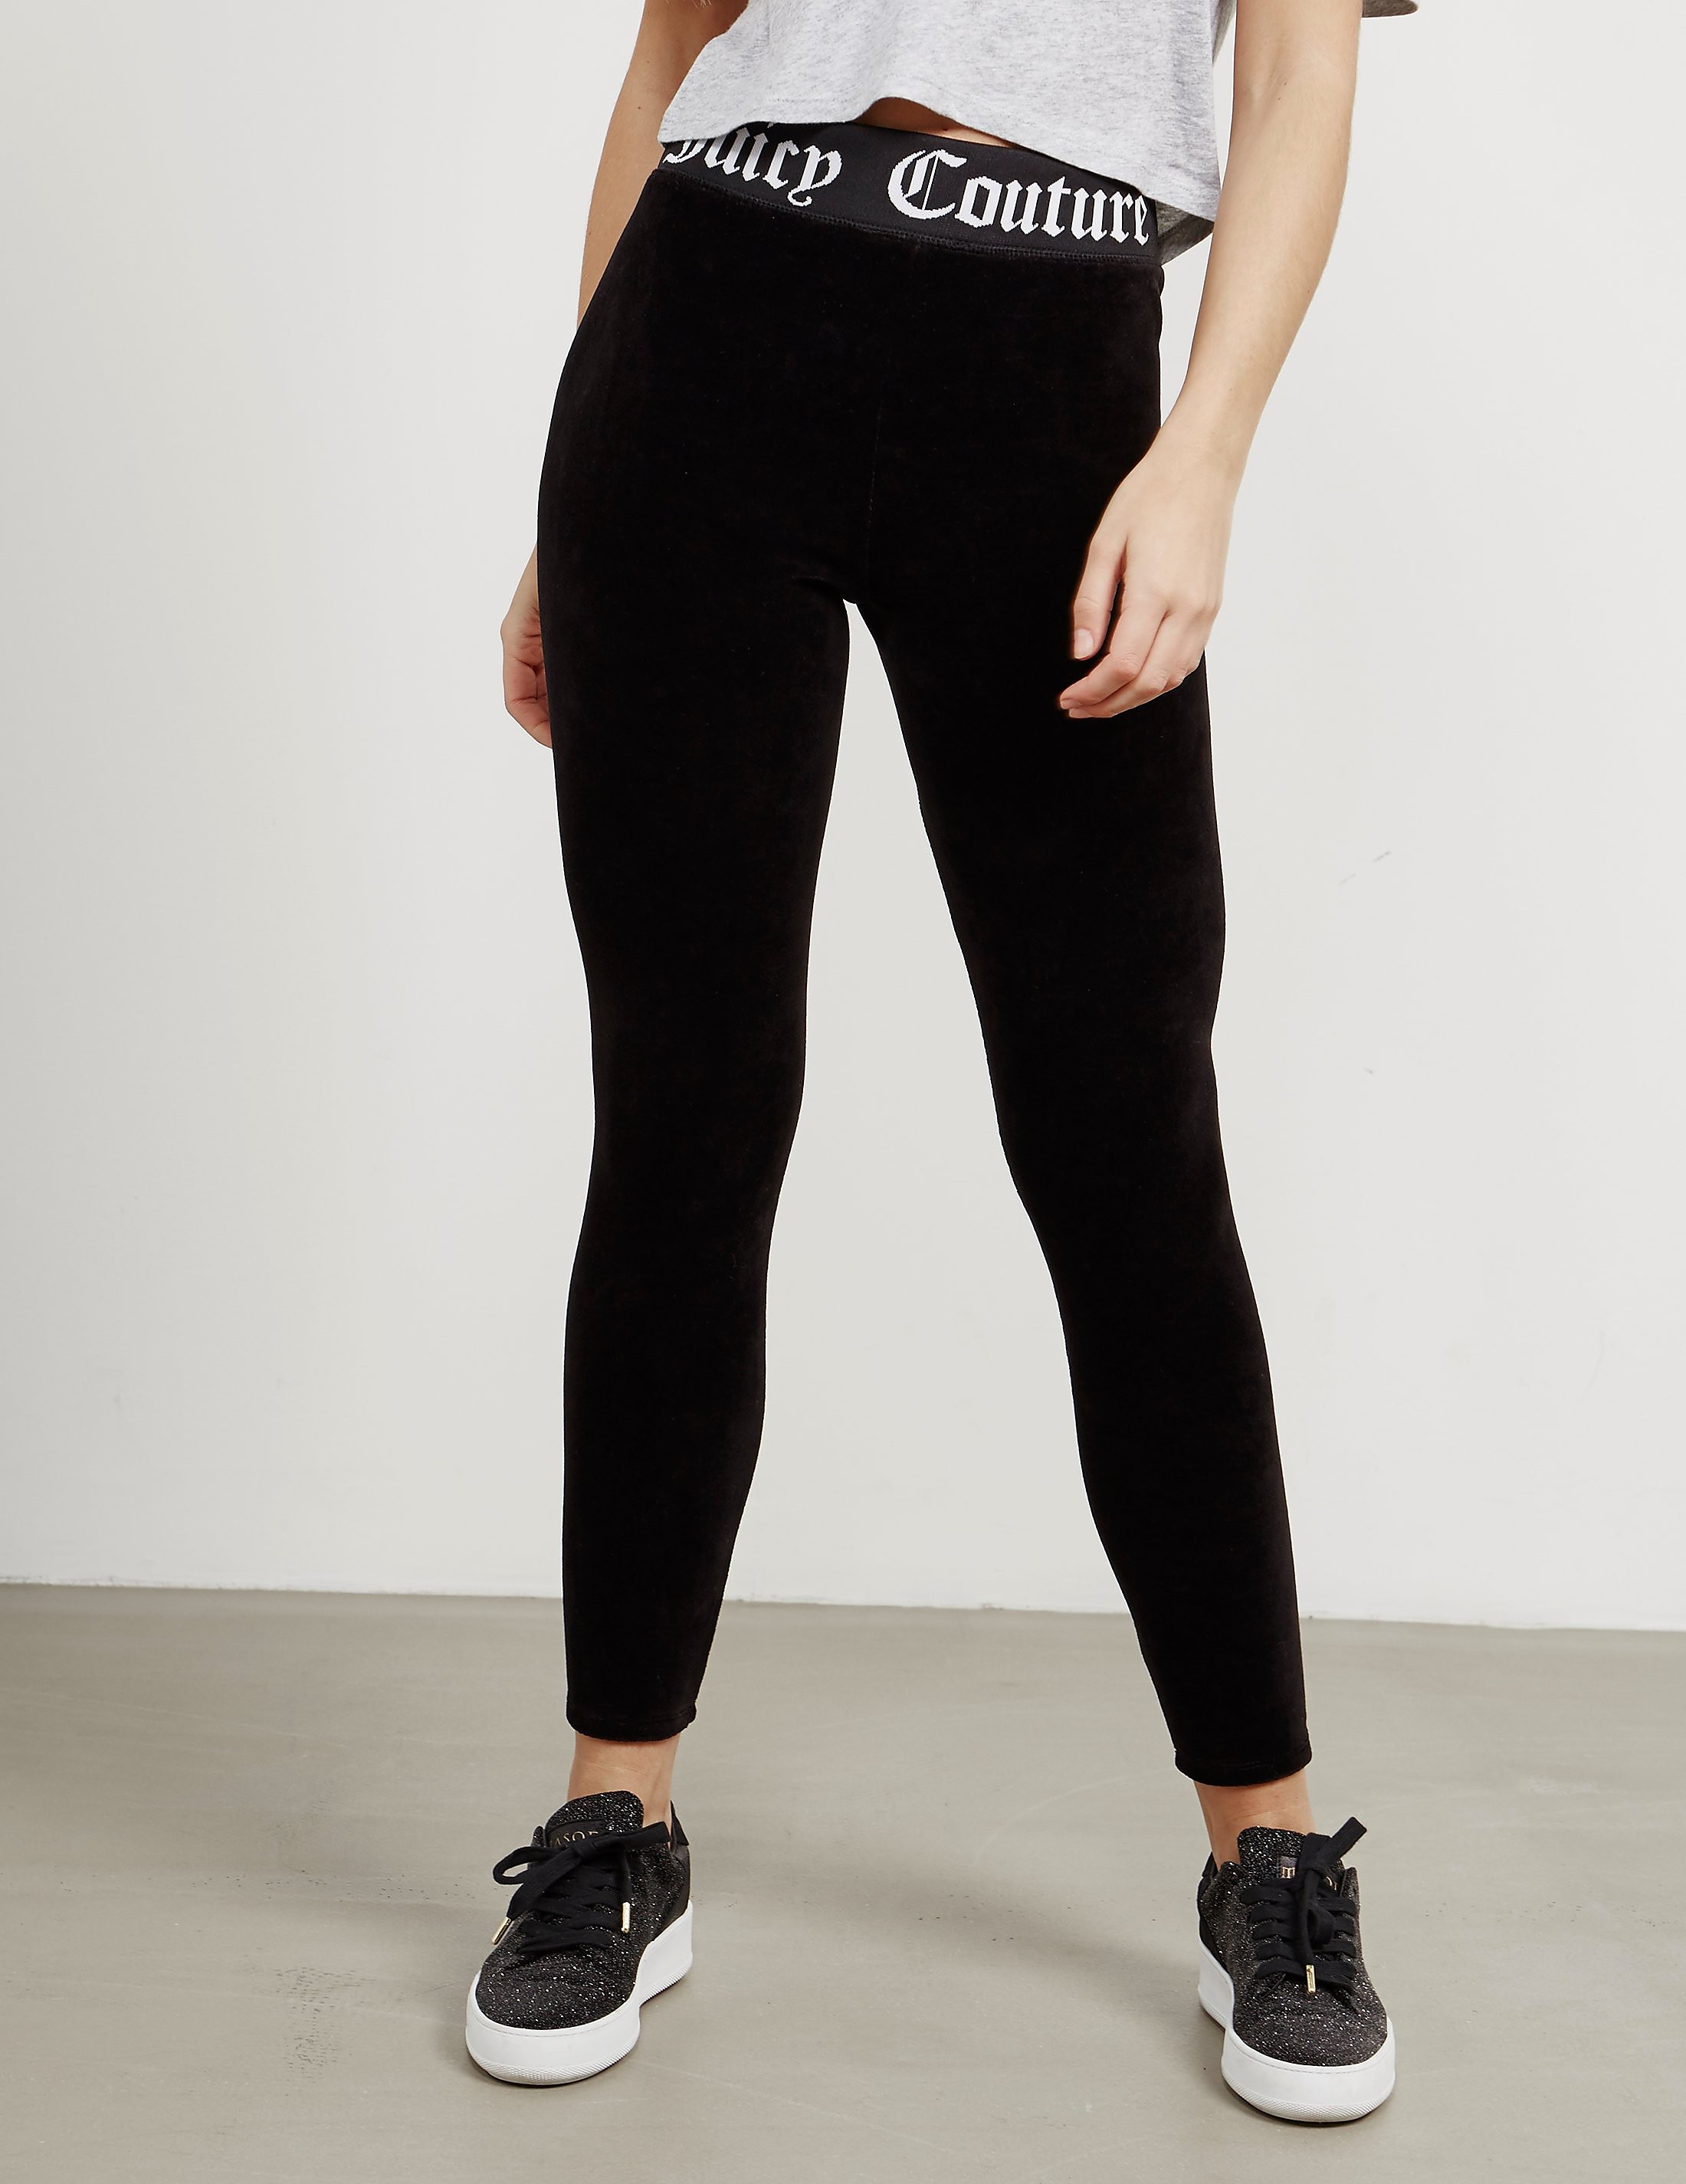 Juicy Couture Brand Taped Leggings